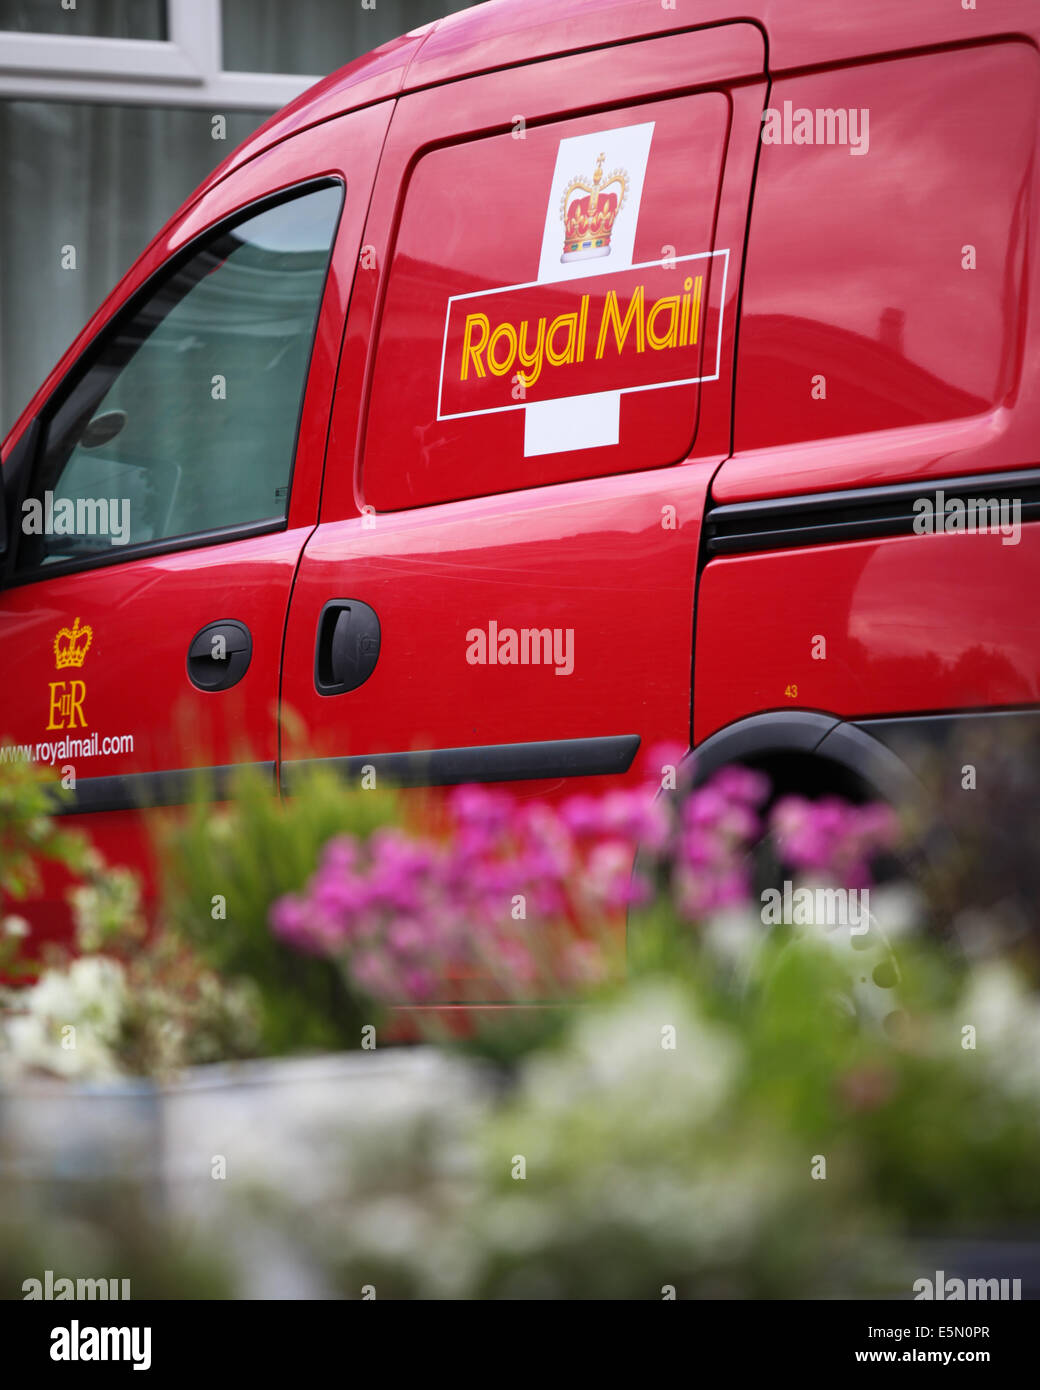 A Royal Mail delivery van parked outside the Royal British Legion in Old Basing, Hampshire, UK - Stock Image